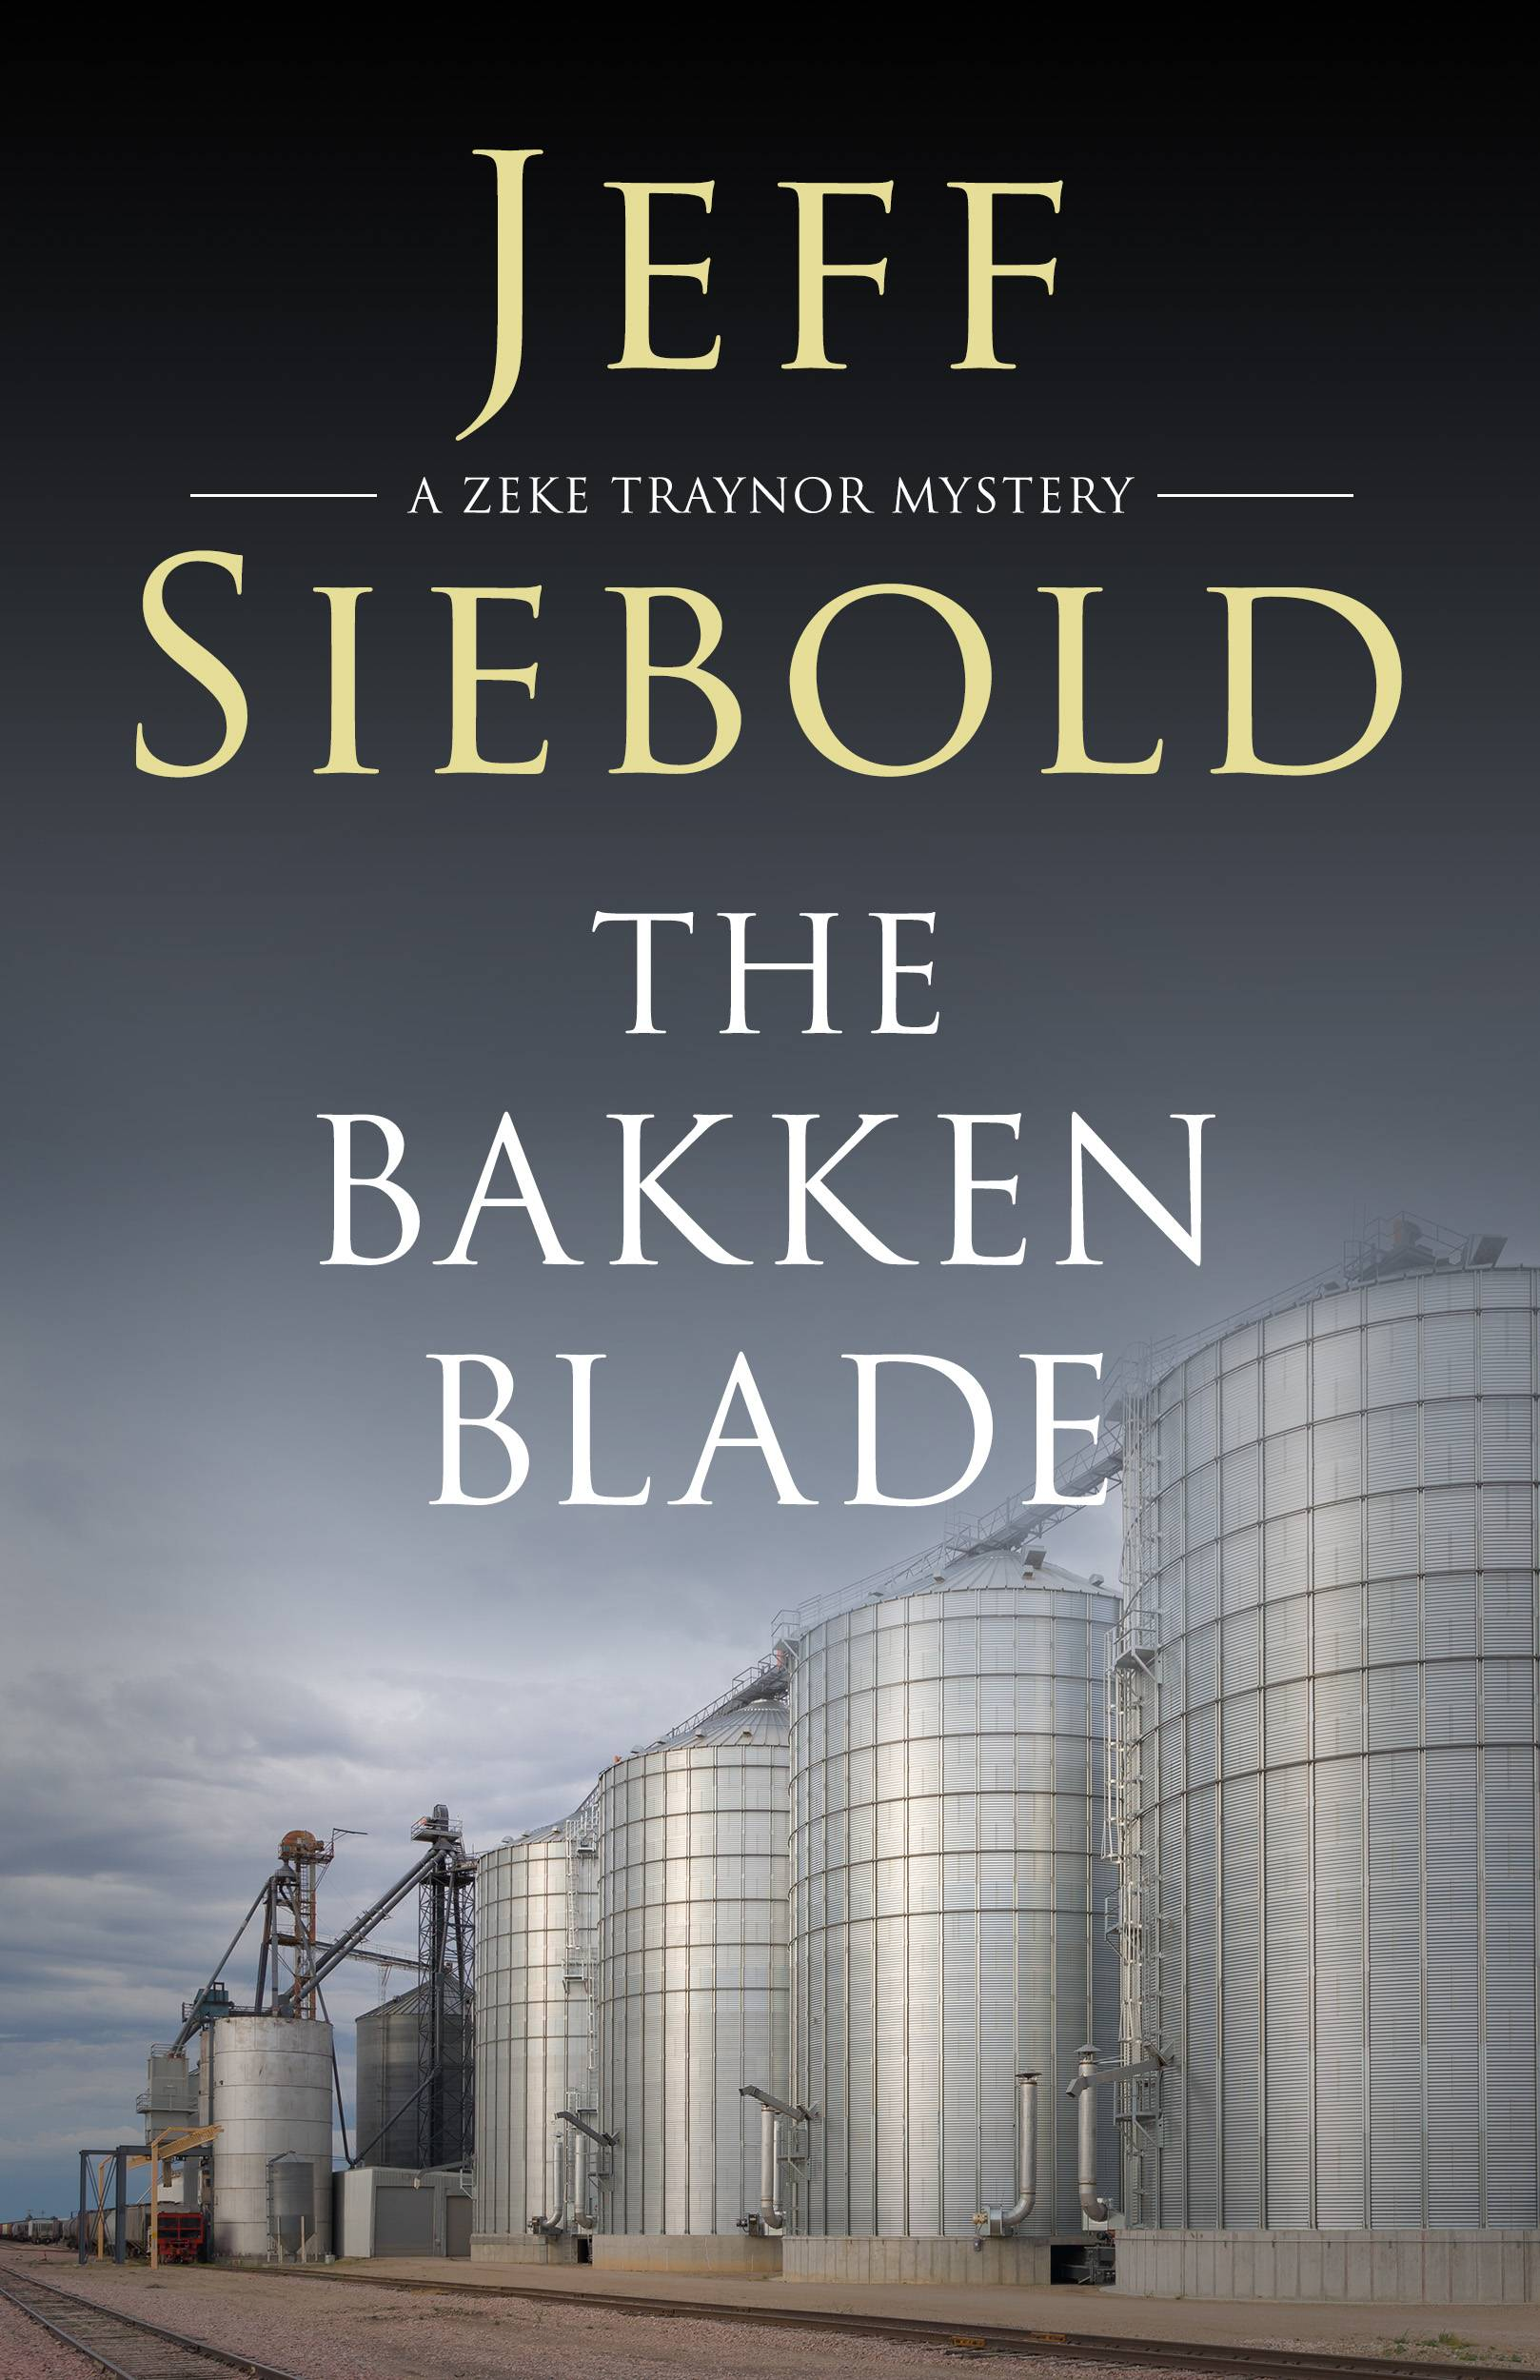 The Bakken Blade